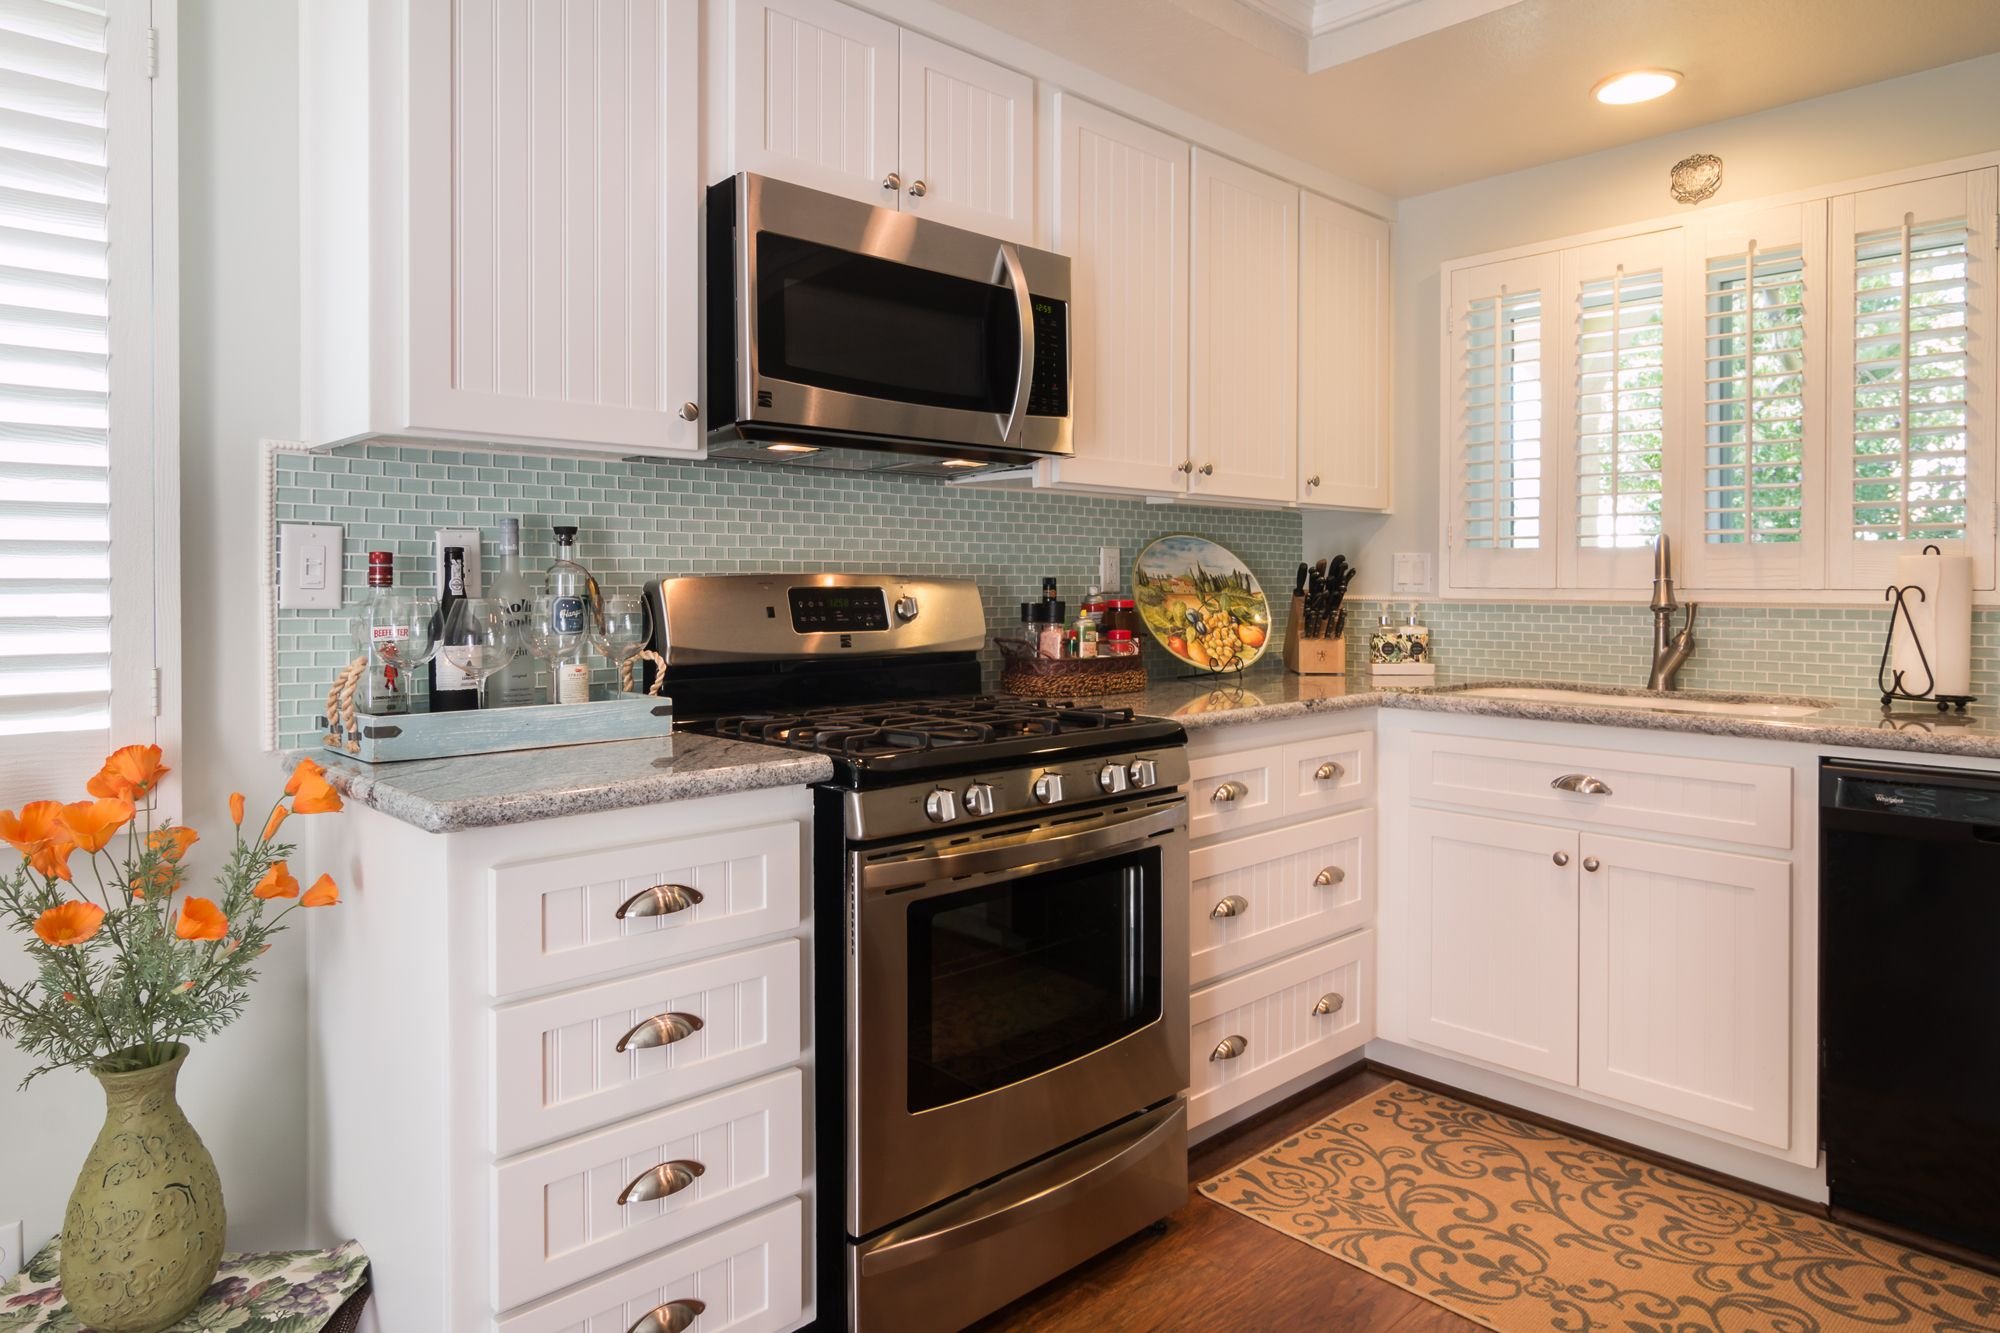 Kitchen Cabinet Refacing White Shaker Bead Board Door Cabinet Refacing Refacing Kitchen Cabinets Cost Refacing Kitchen Cabinets